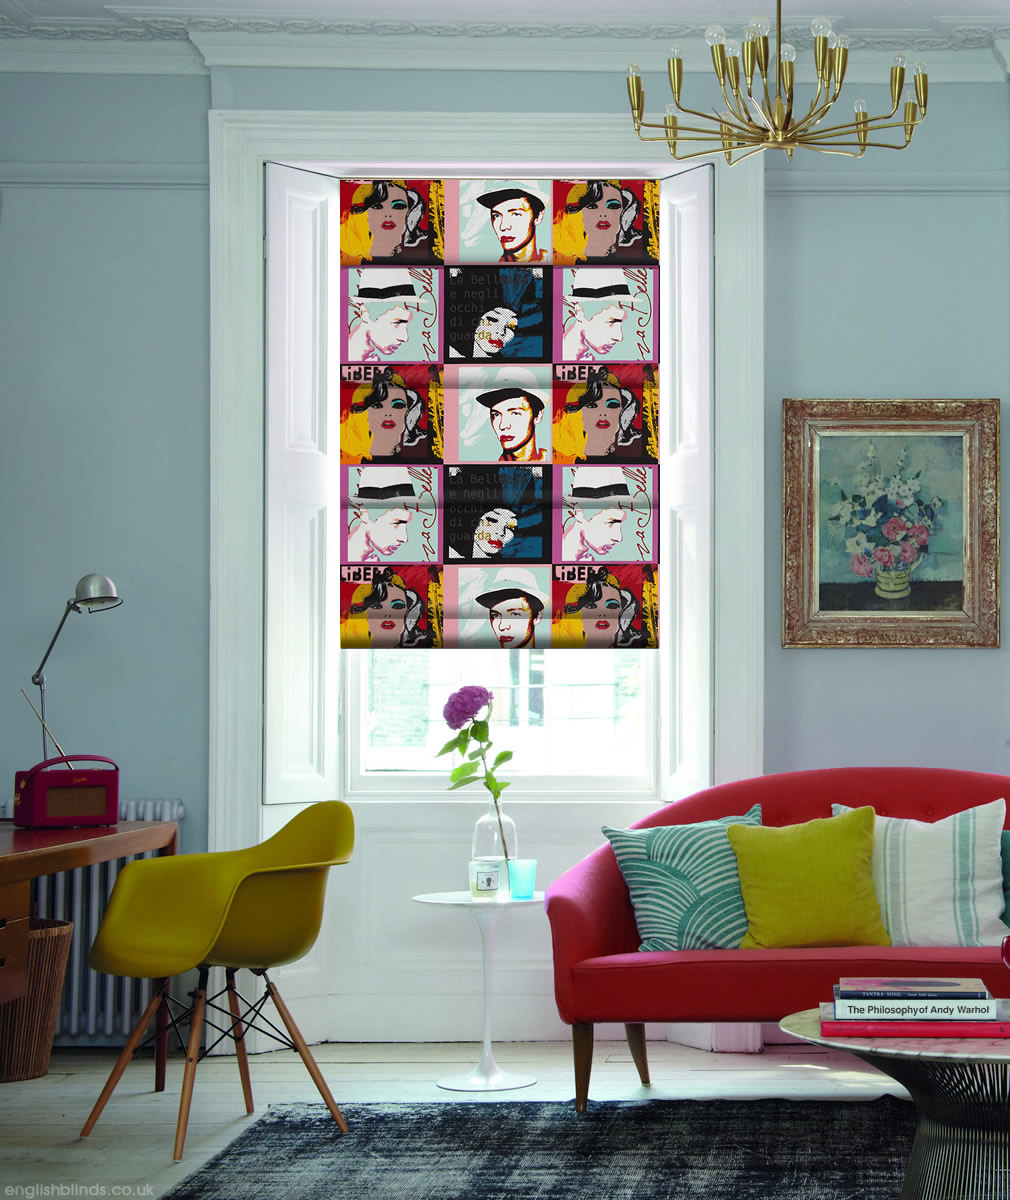 Luxury Pop Art Roman Blinds Made To Measure By English Blinds